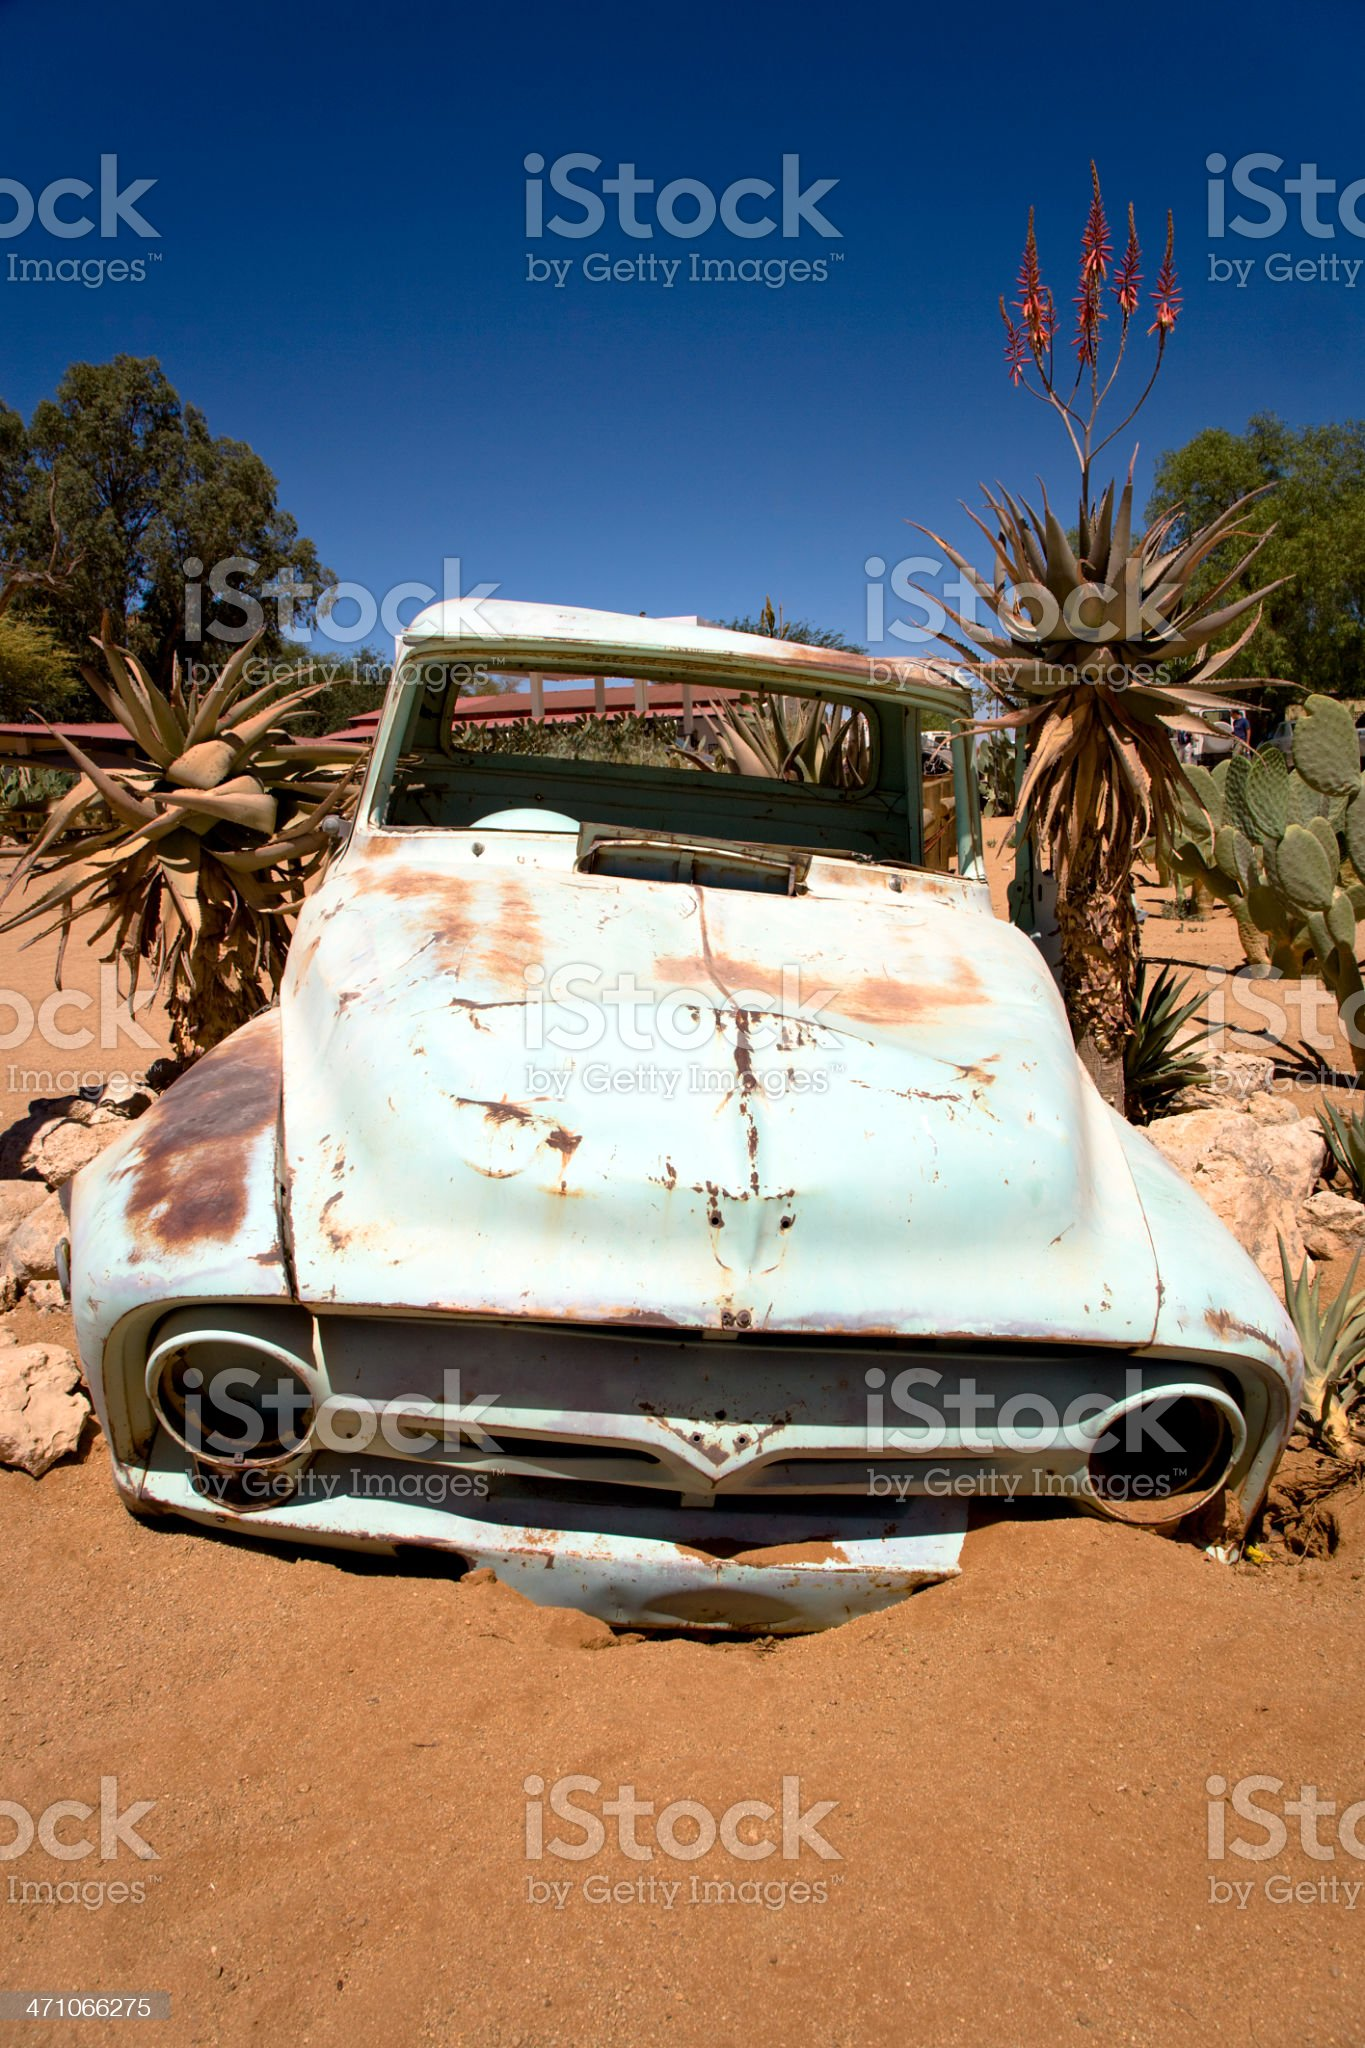 Crashed Vintage Car Wreck royalty-free stock photo